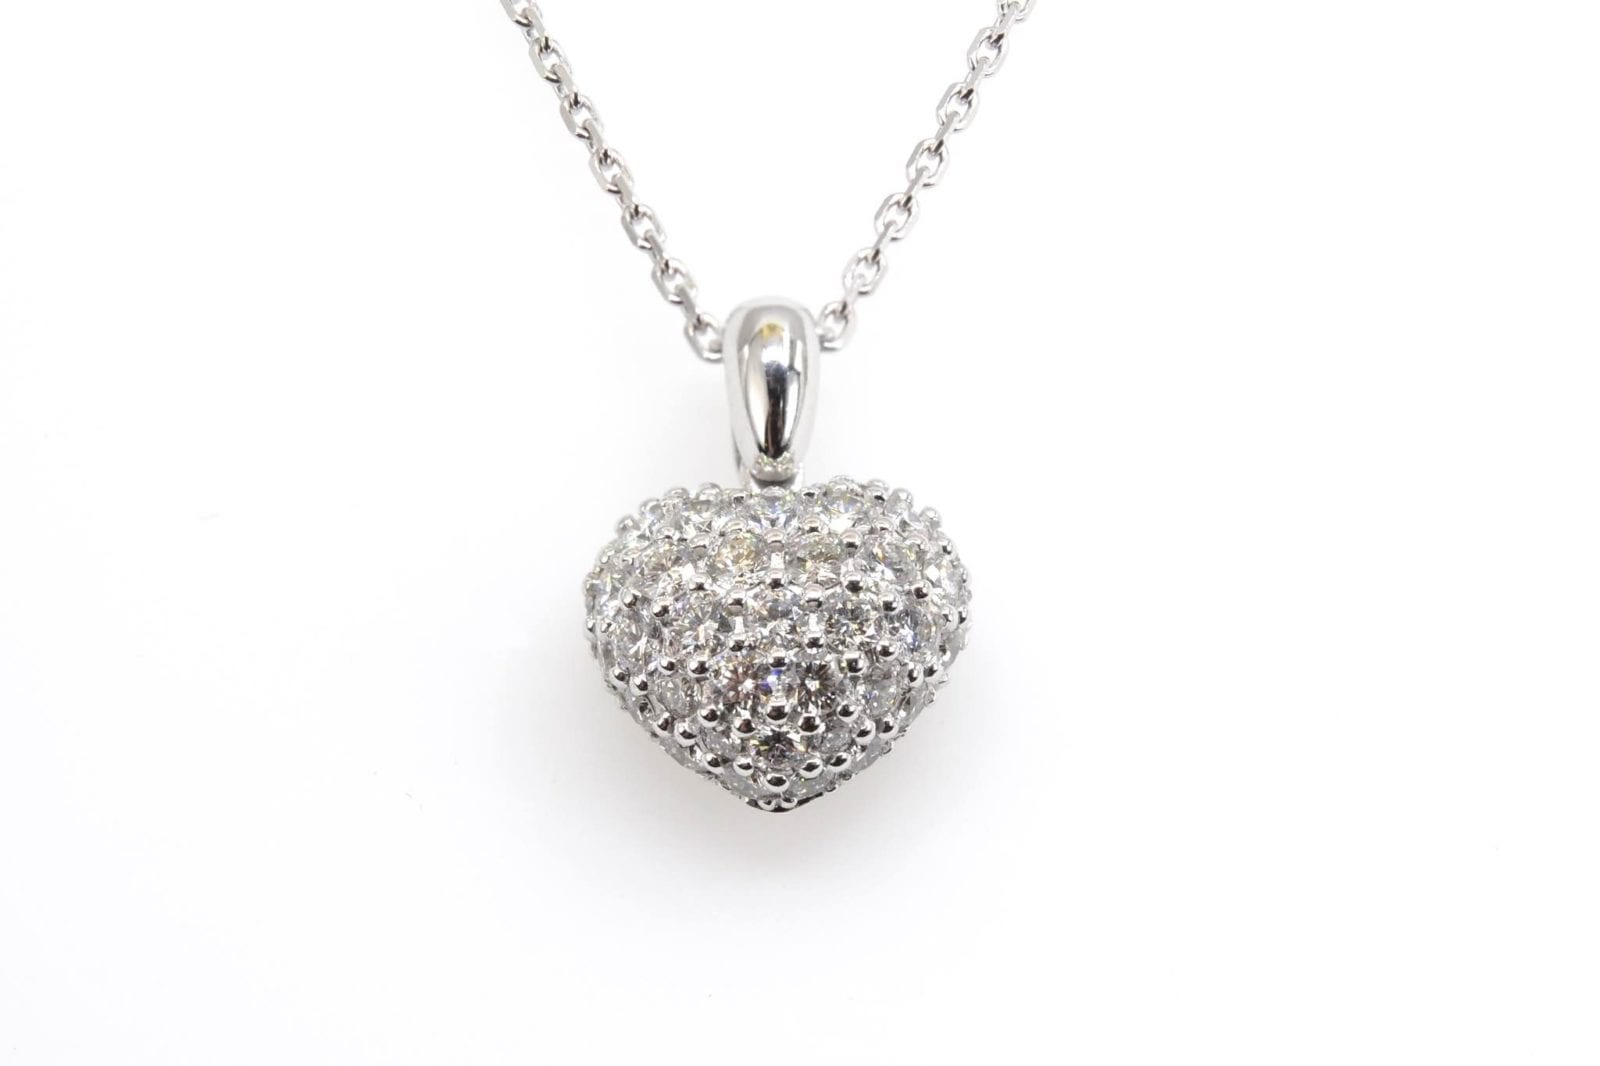 Pendentif coeur Chopard diamants en or blanc 18k